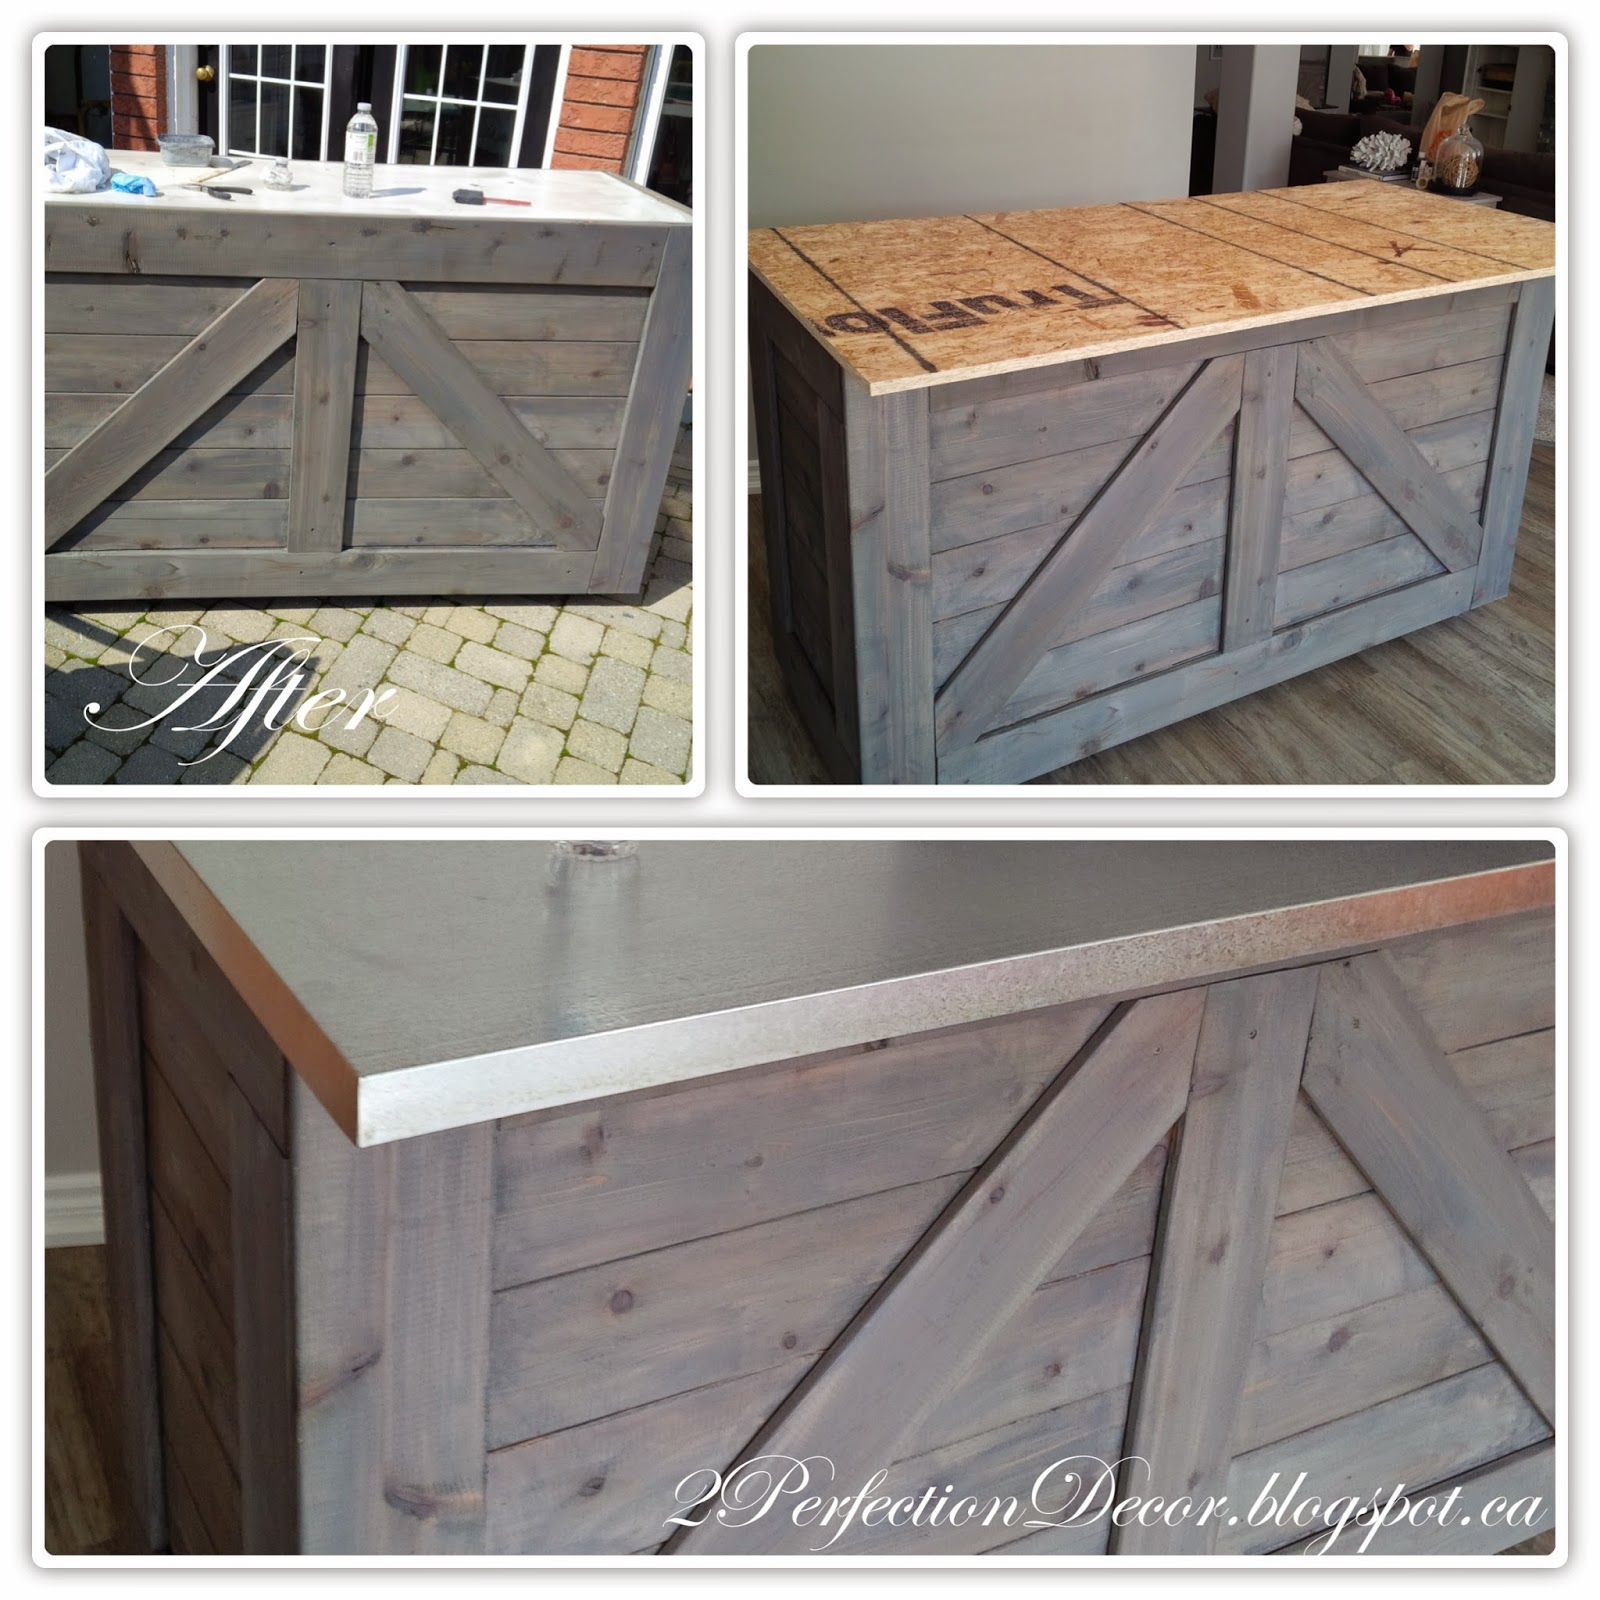 Charmant IKEA Hack Rustic Bar With Galvanized Metal Top | Remodelaholic | Bloglovinu0027